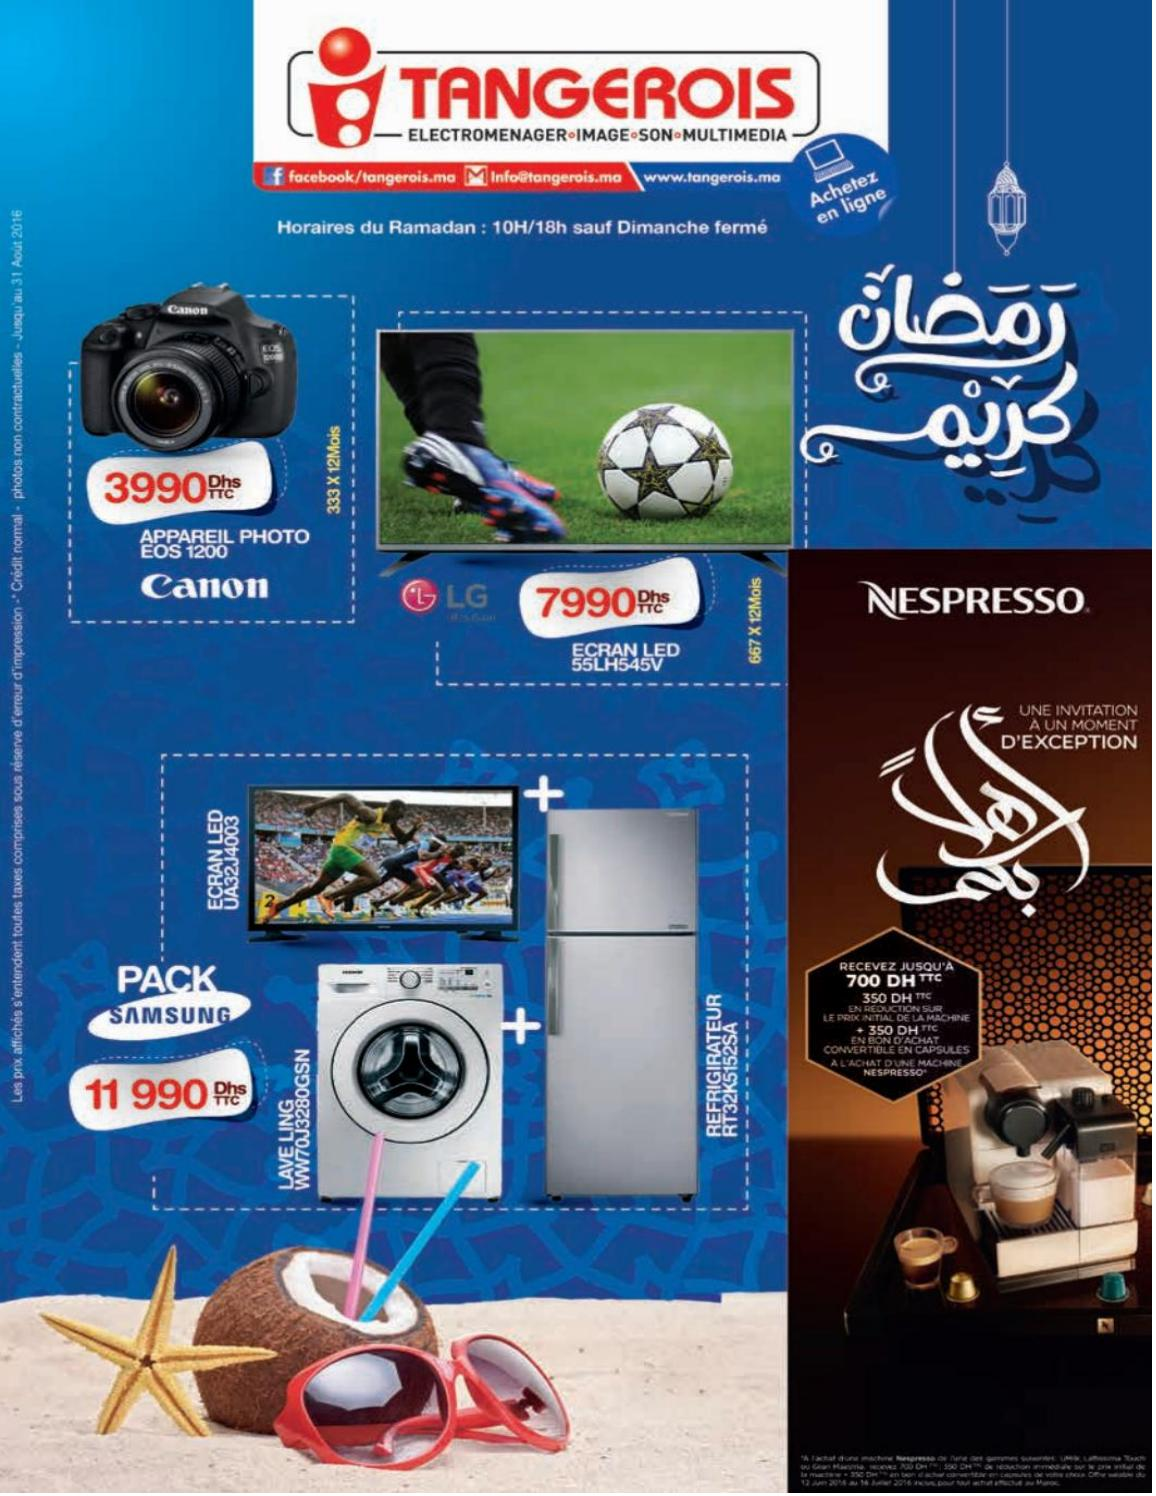 Catalogue Electromenager Catalogue Tangerois Electromenager Promotion Au Maroc 2016